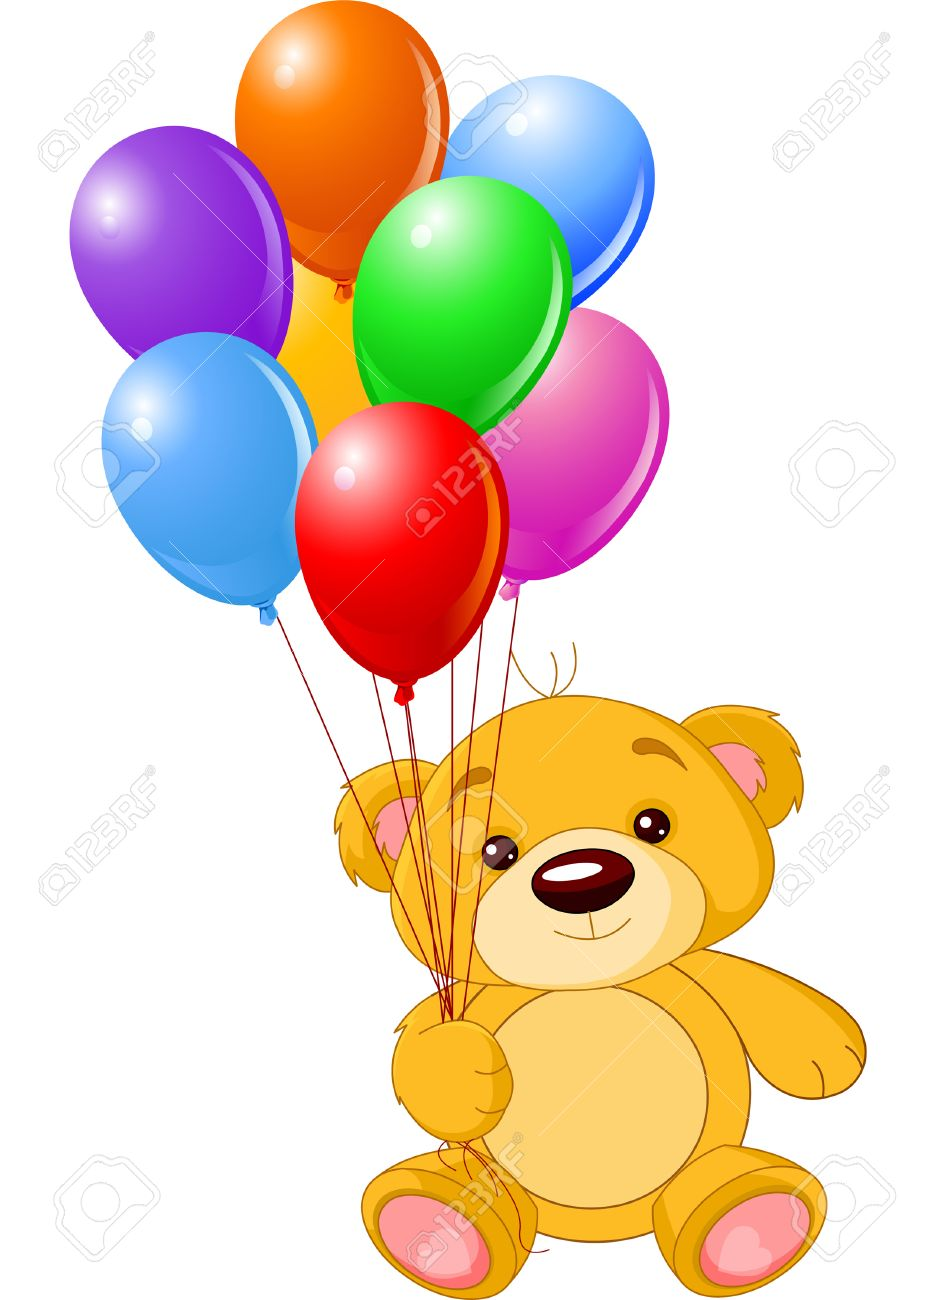 Vector illustration of cute little Teddy bear holding colorful balloons - 6523430